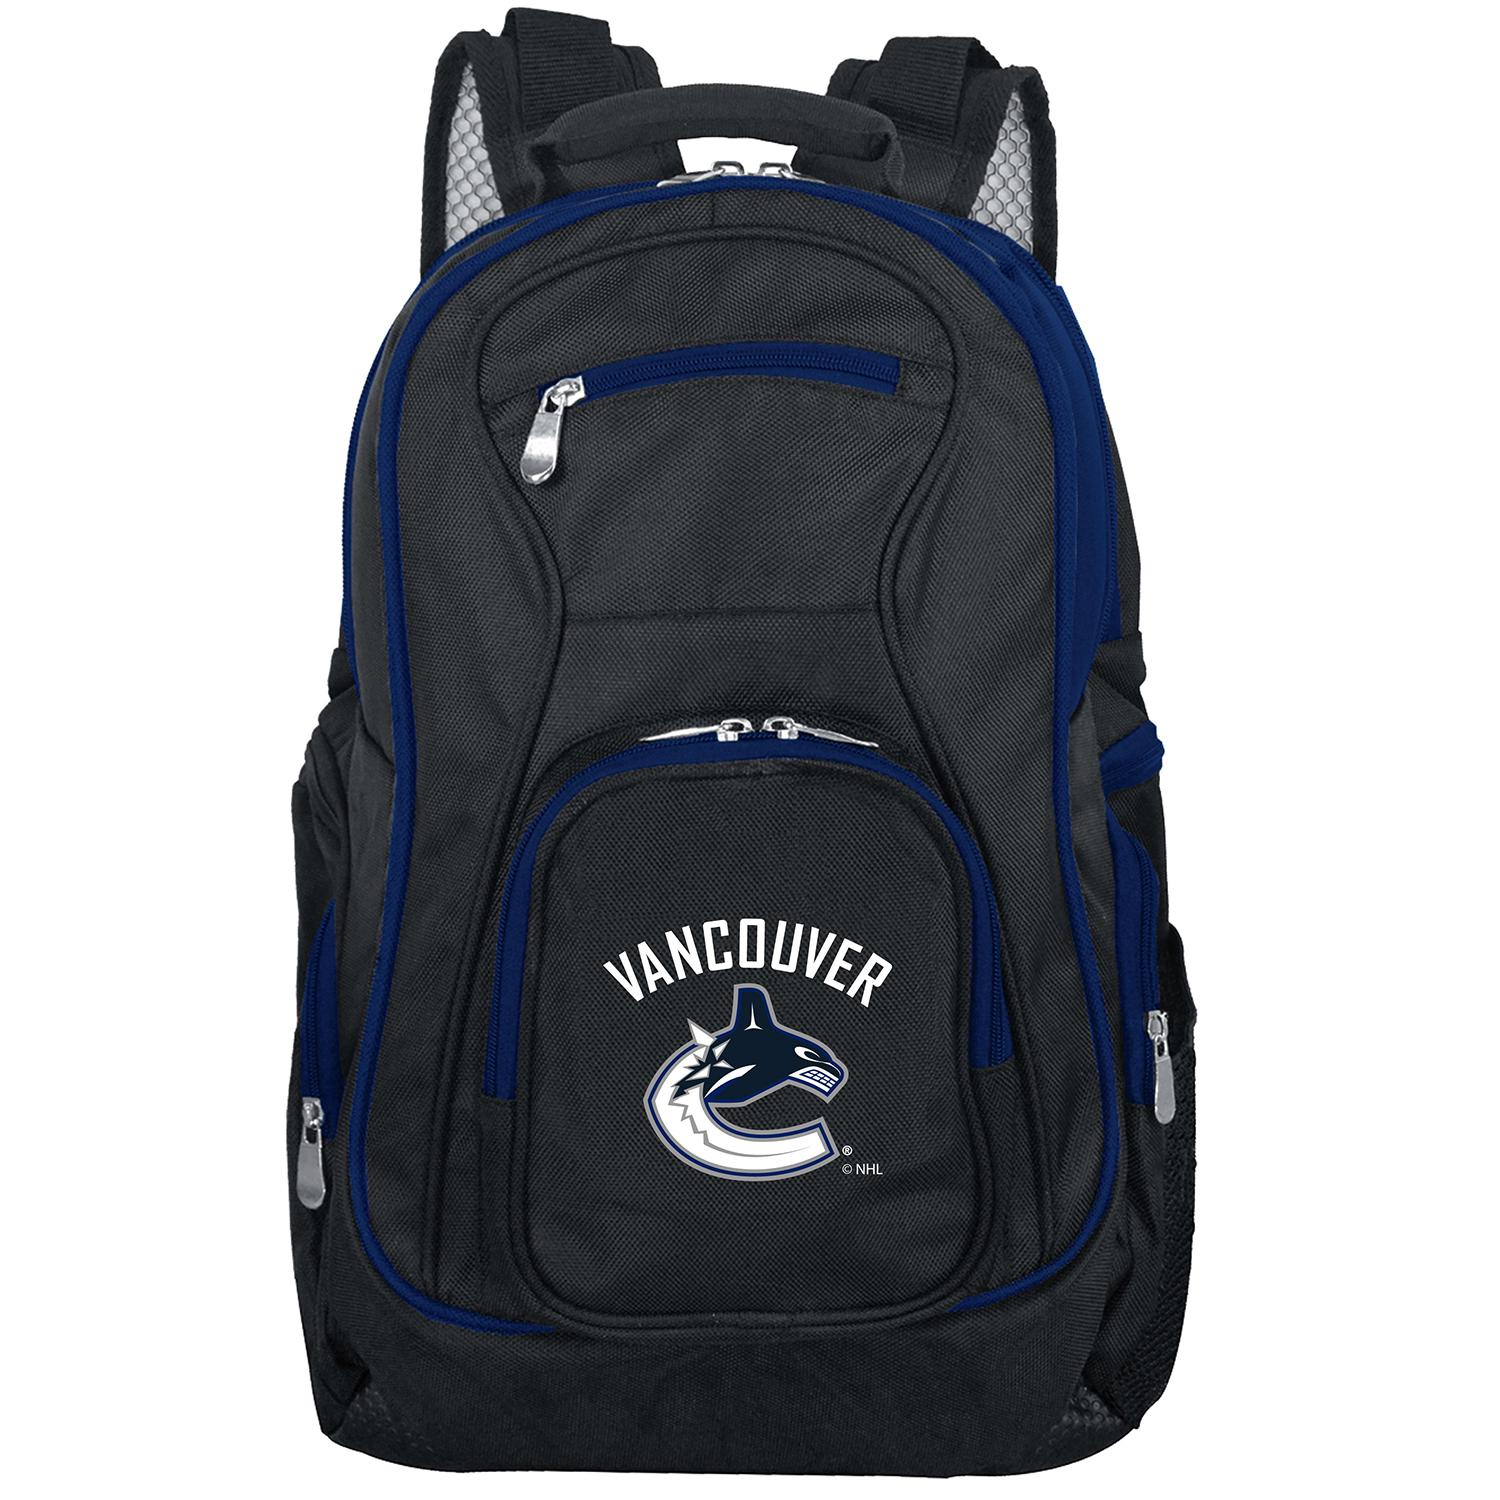 NHL Vancouver Canucks Premium Laptop Backpack with Colored Trim